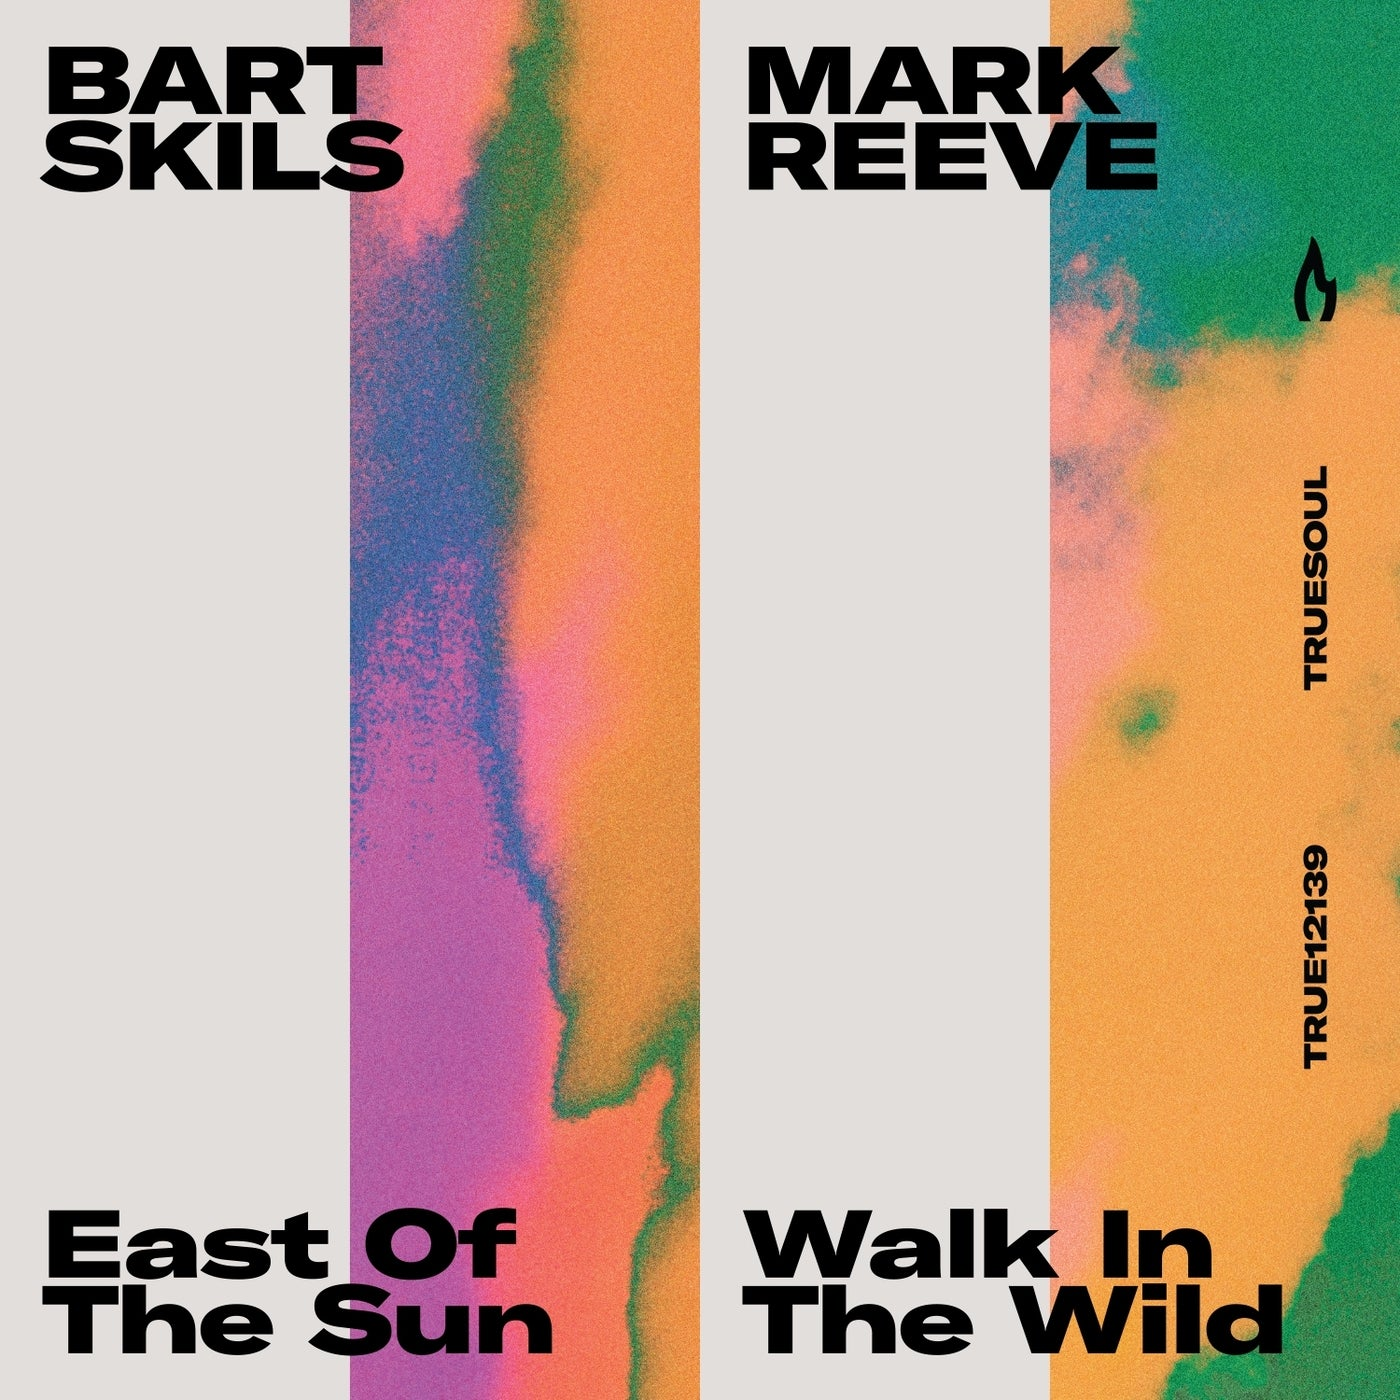 Download East of the Sun / Walk in the Wild on Electrobuzz